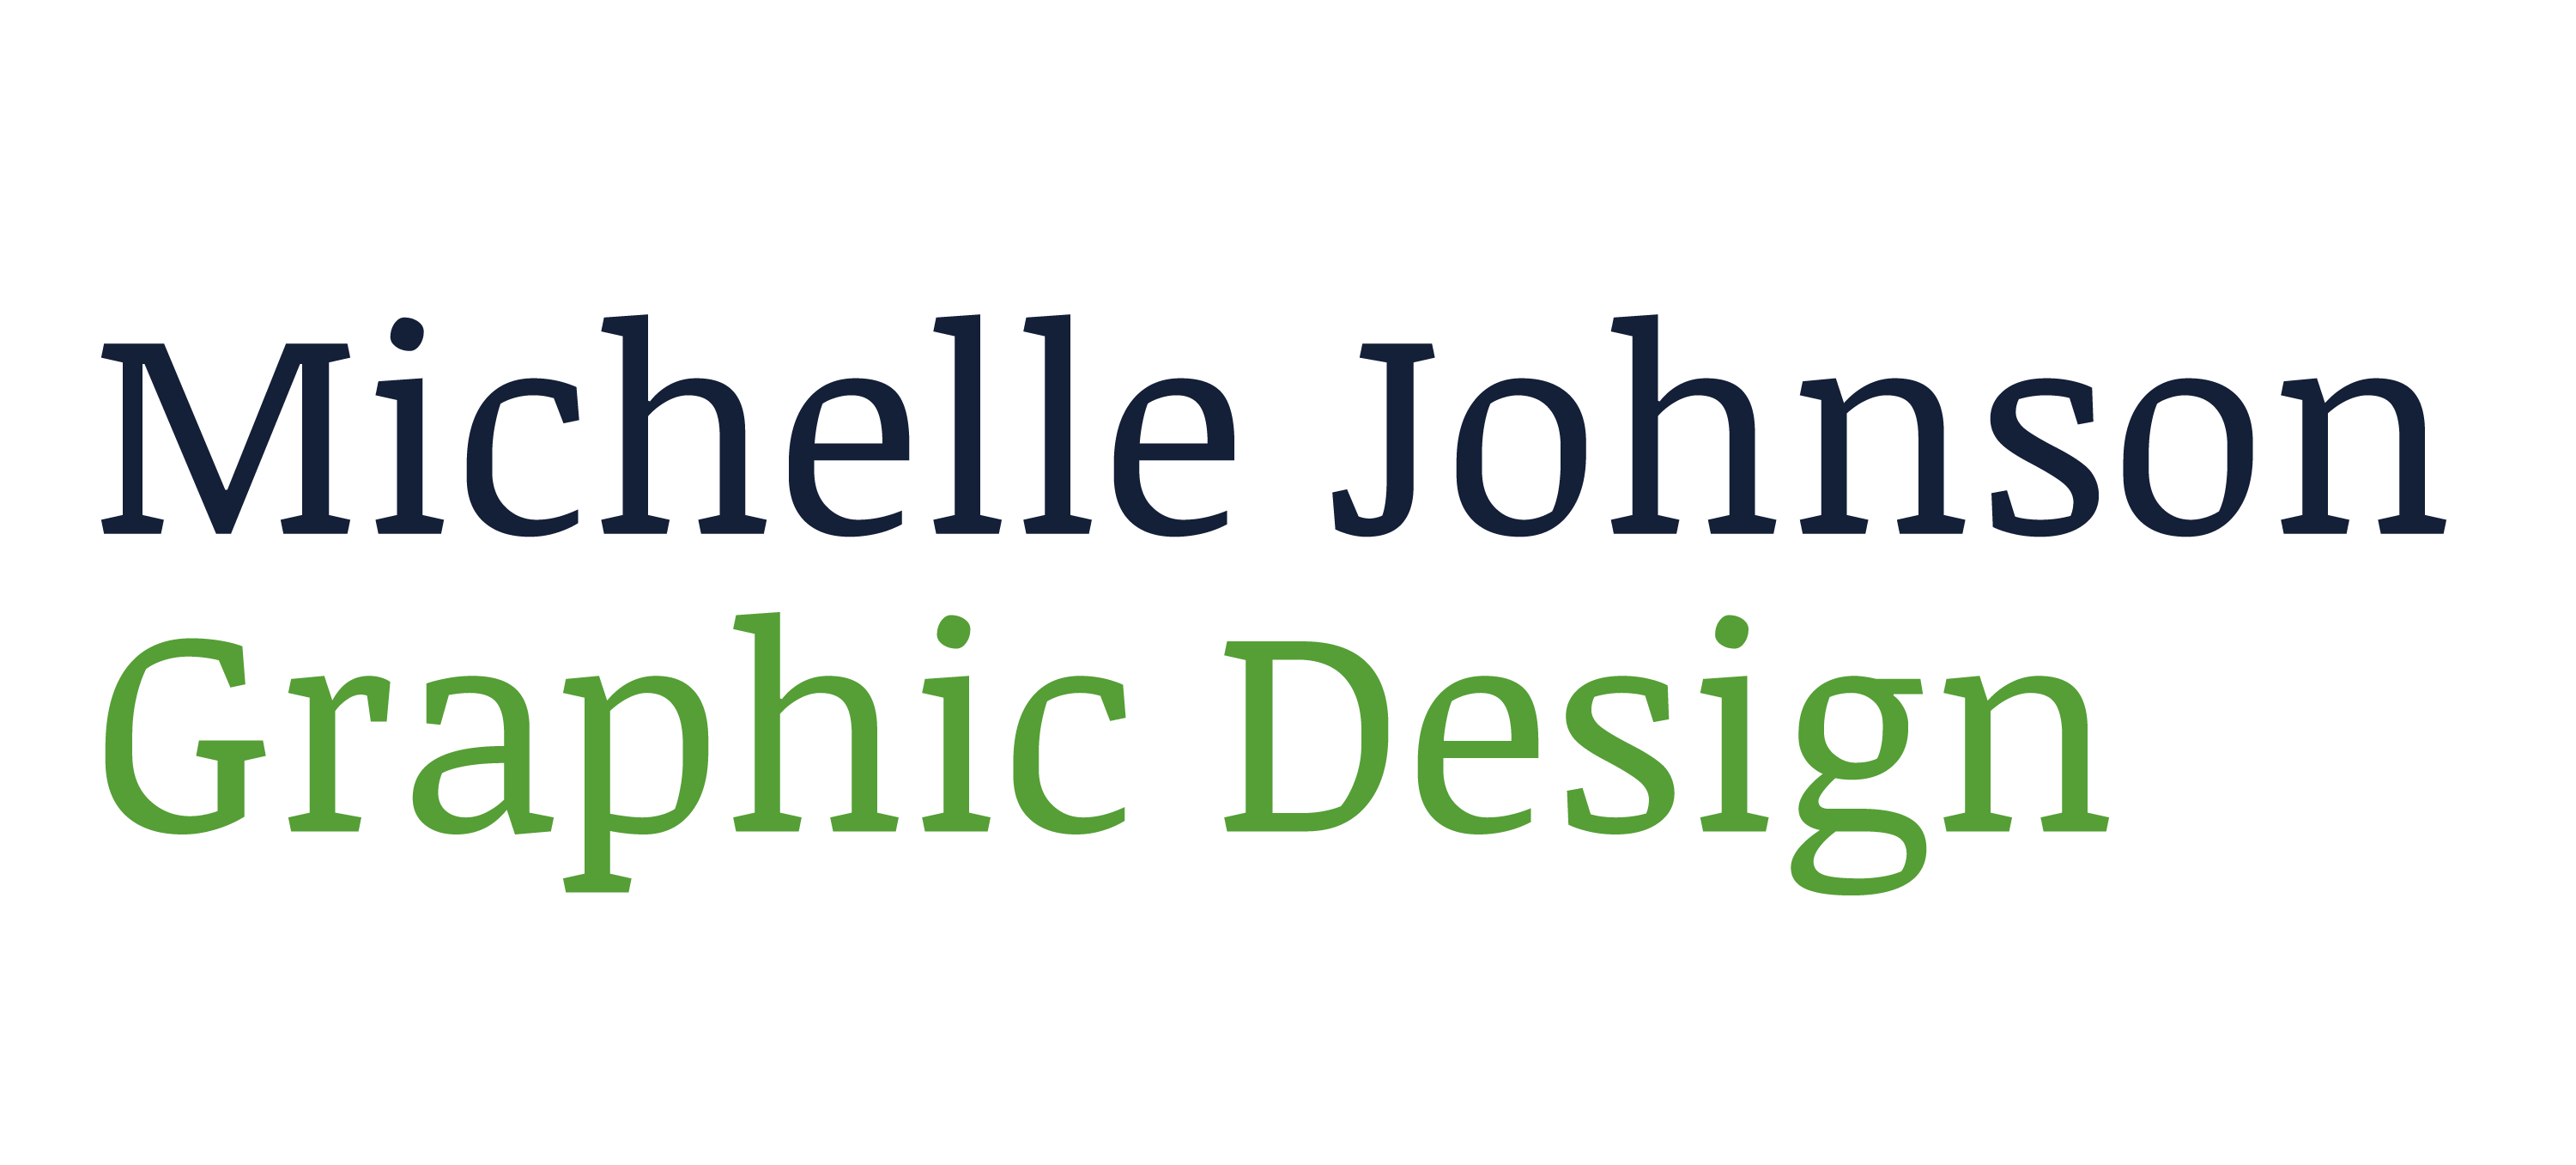 Michelle Johnson Graphic Design